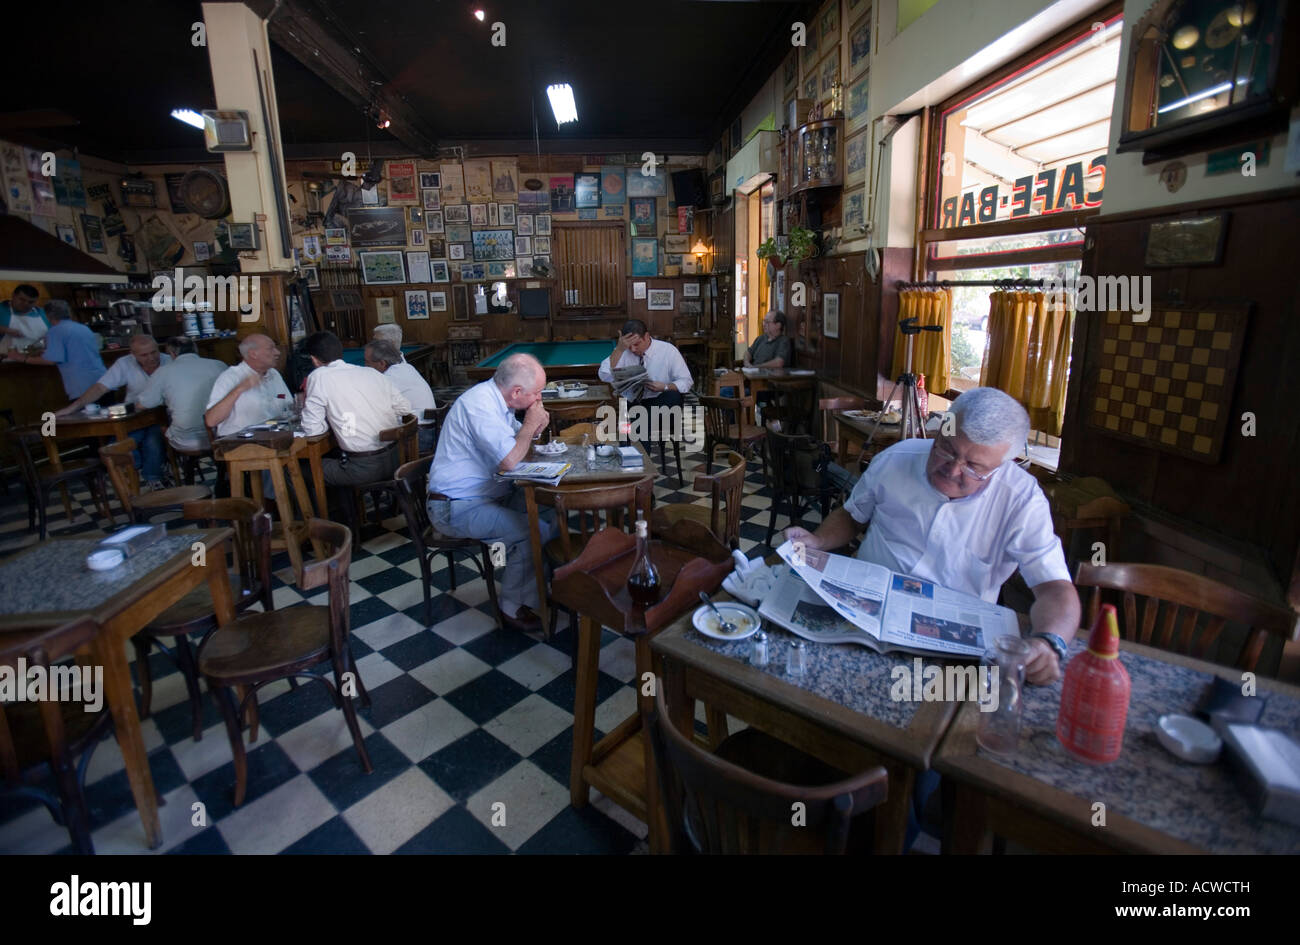 An everyday scene in a classic bar in Buenos Aires Argentina with billiards chess - Stock Image